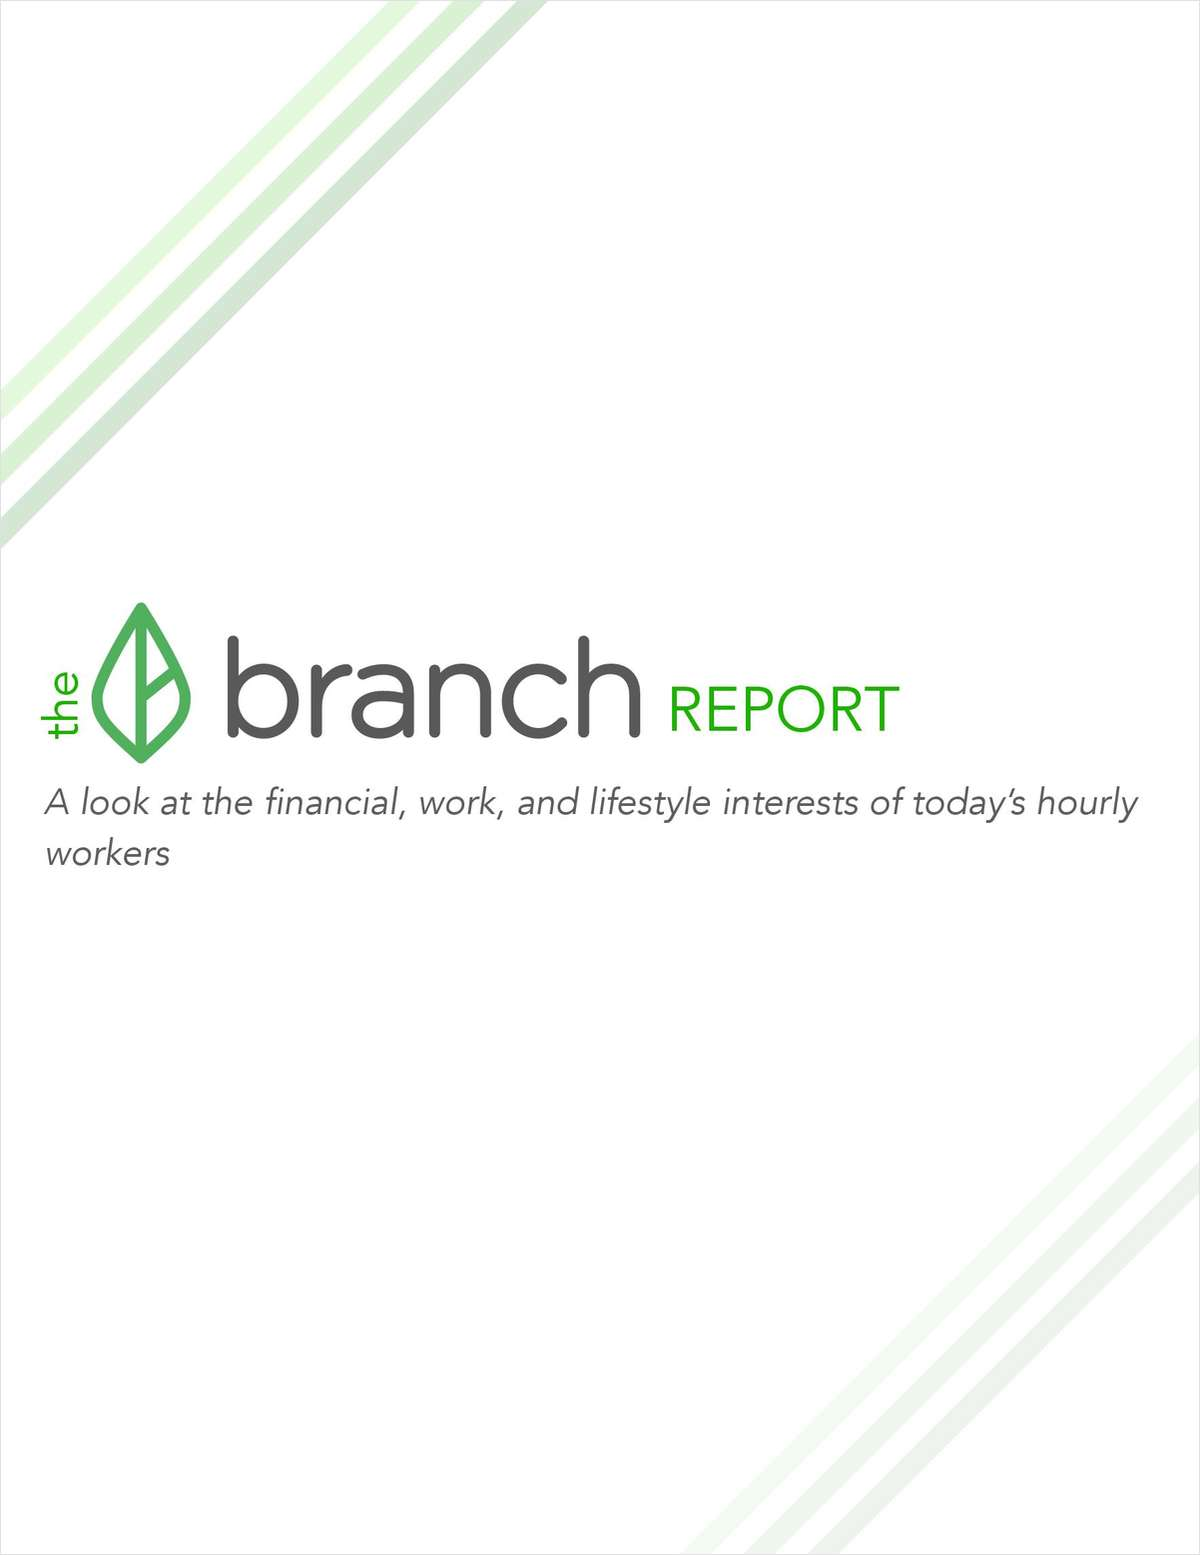 The Branch Report: A look at the financial, work, and lifestyle interests of today's hourly workers